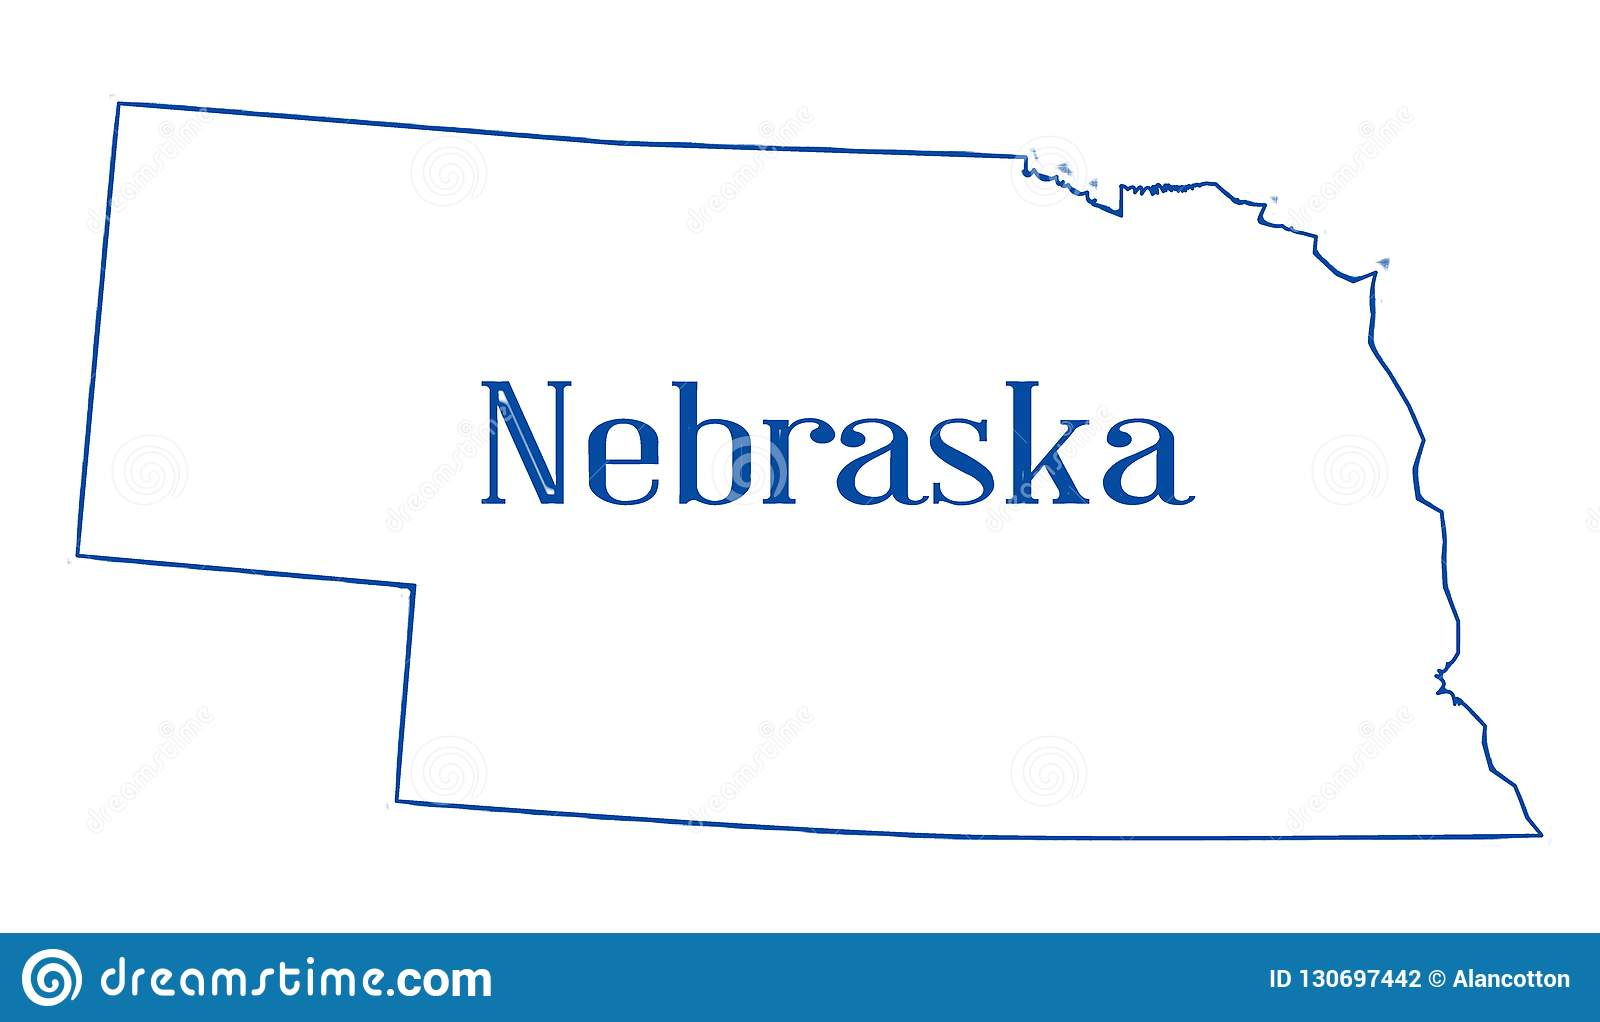 Nebraska State Outline Map Stock Illustration Illustration Of - Us-map-nebraska-state